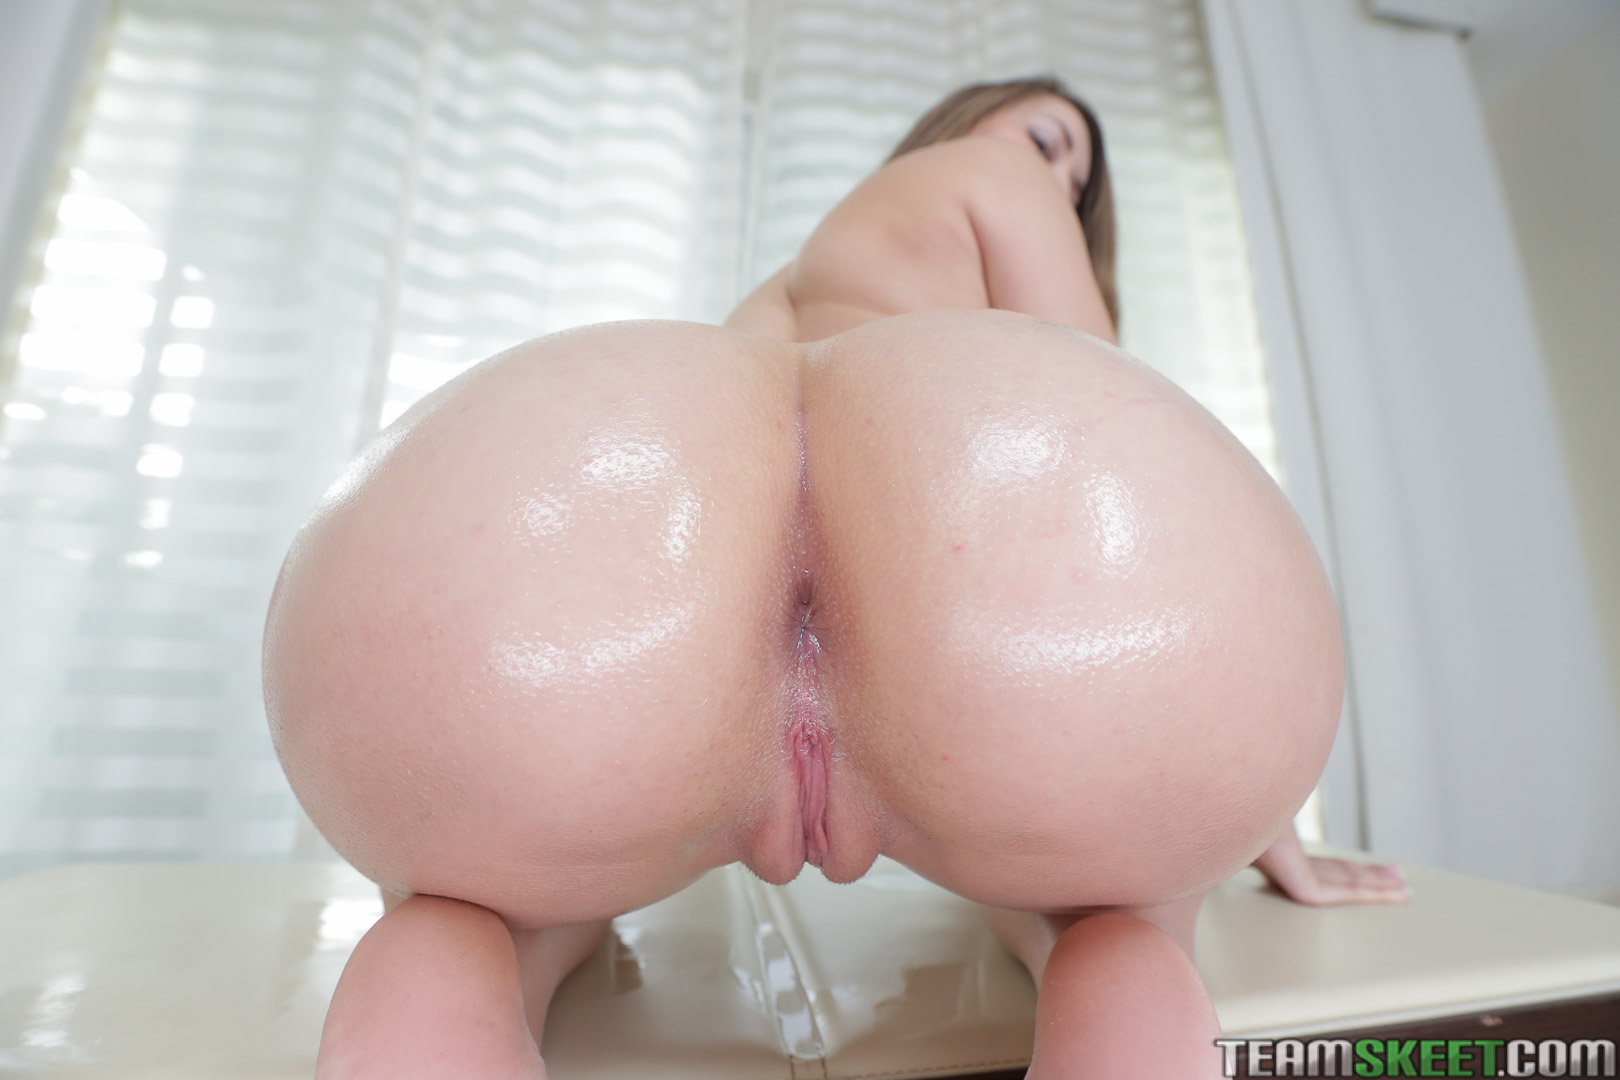 image Big booty latina pov homemade video